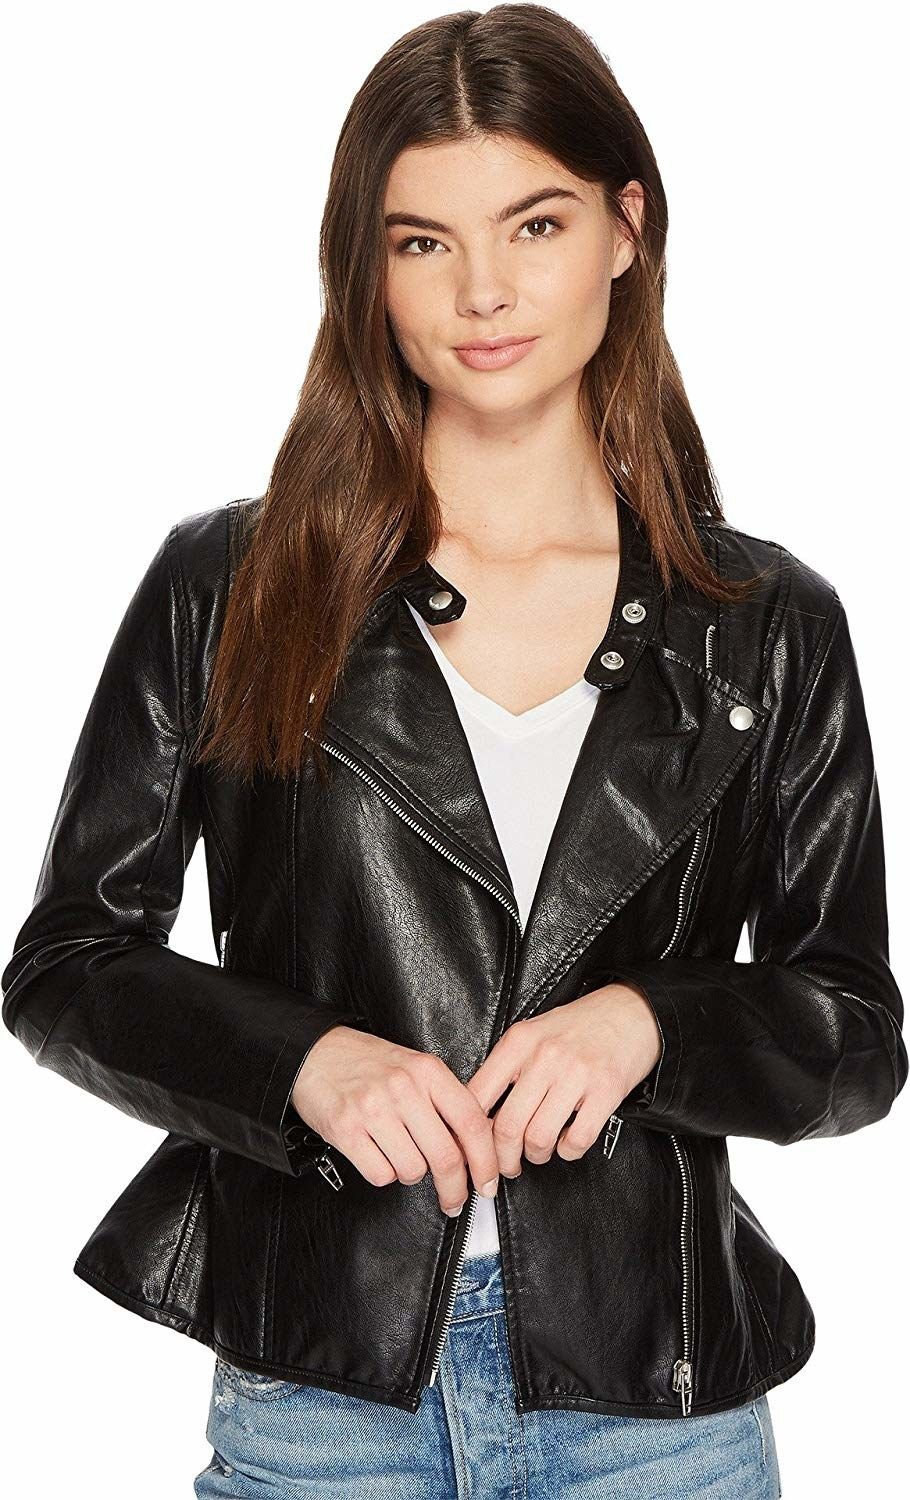 23 Wardrobe Basics From Amazon You Ll Actually Want To Add To Your Wardrobe Womens Black Leather Jacket Leather Jackets Women Vegan Leather Jacket